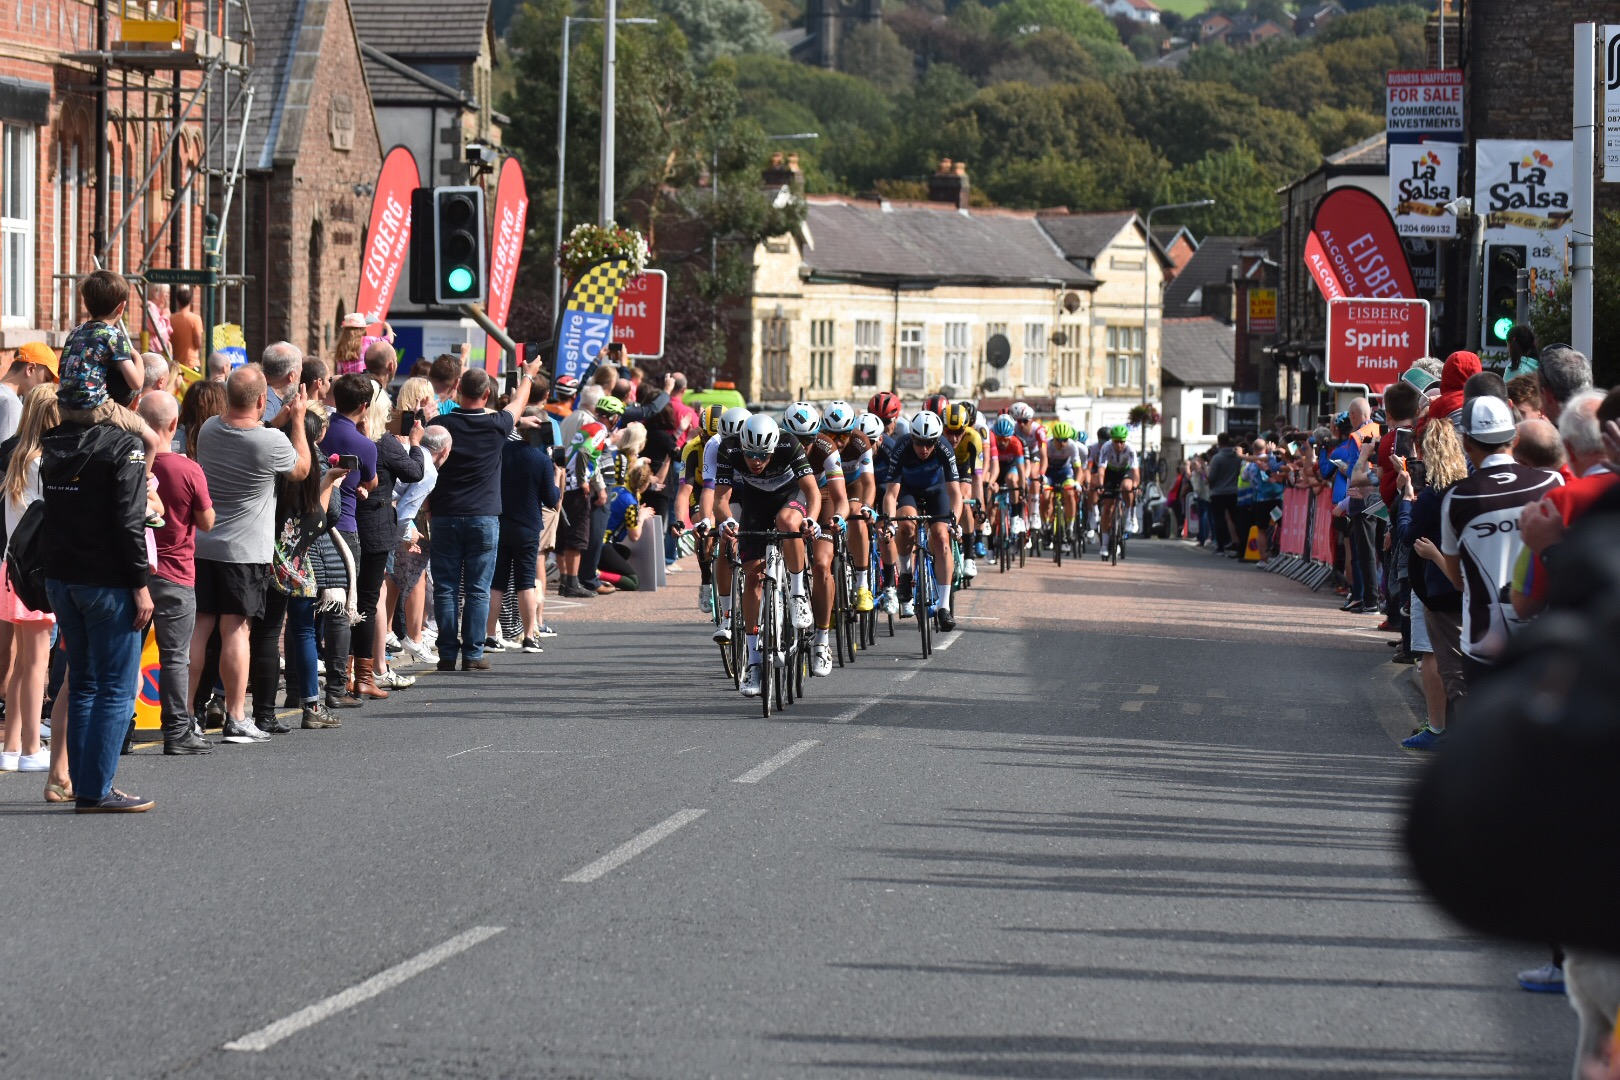 Tour of Britain Eisberg sprint